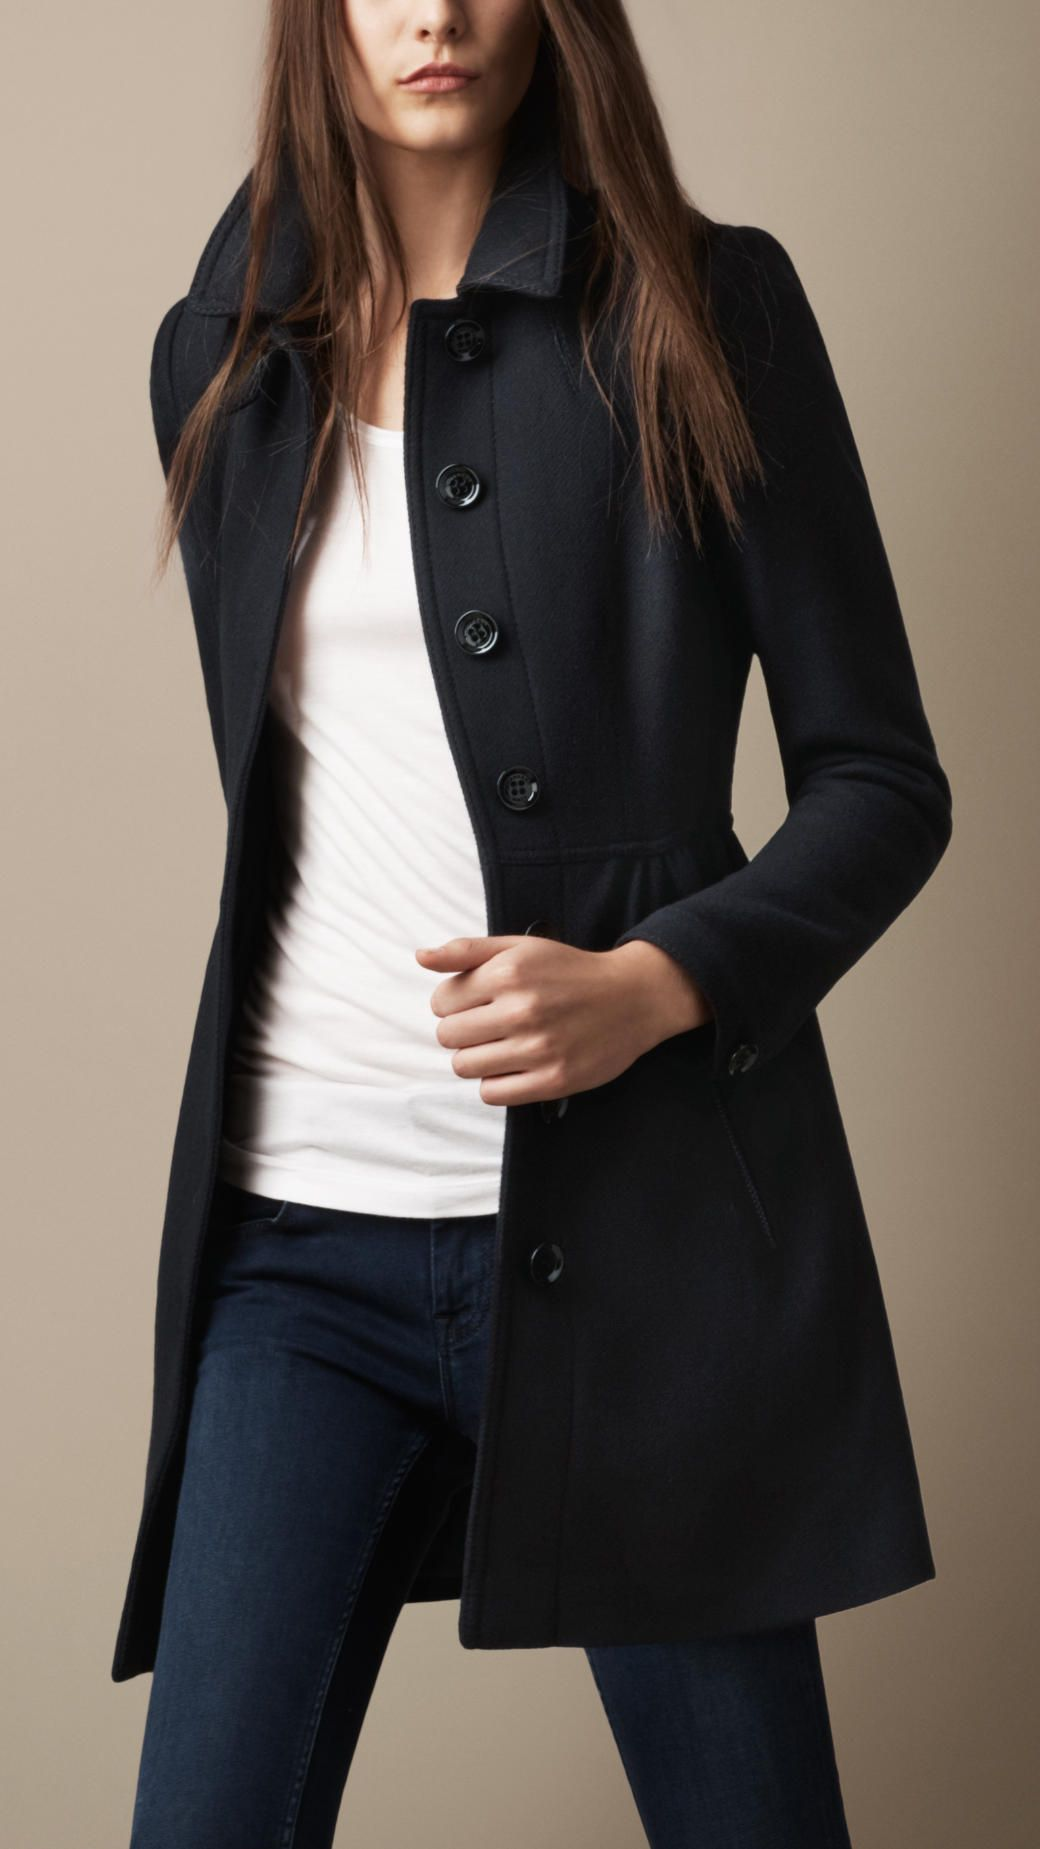 Women's Blue Wool Twill Dress Coat | Burberry brit and Navy